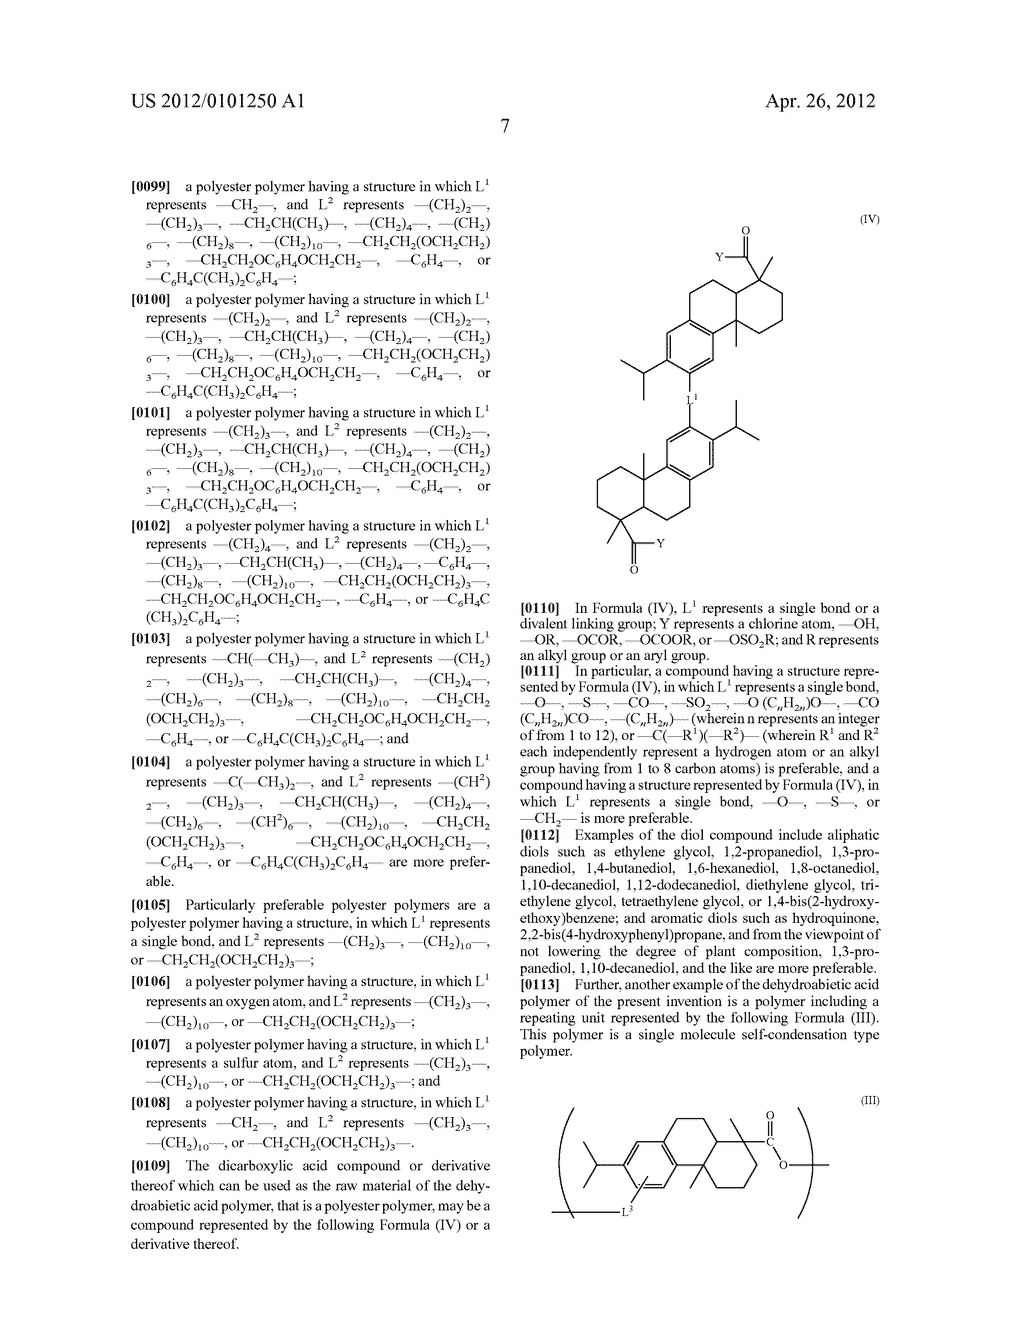 NOVEL DEHYDROABIETIC ACID POLYMER - diagram, schematic, and image 09